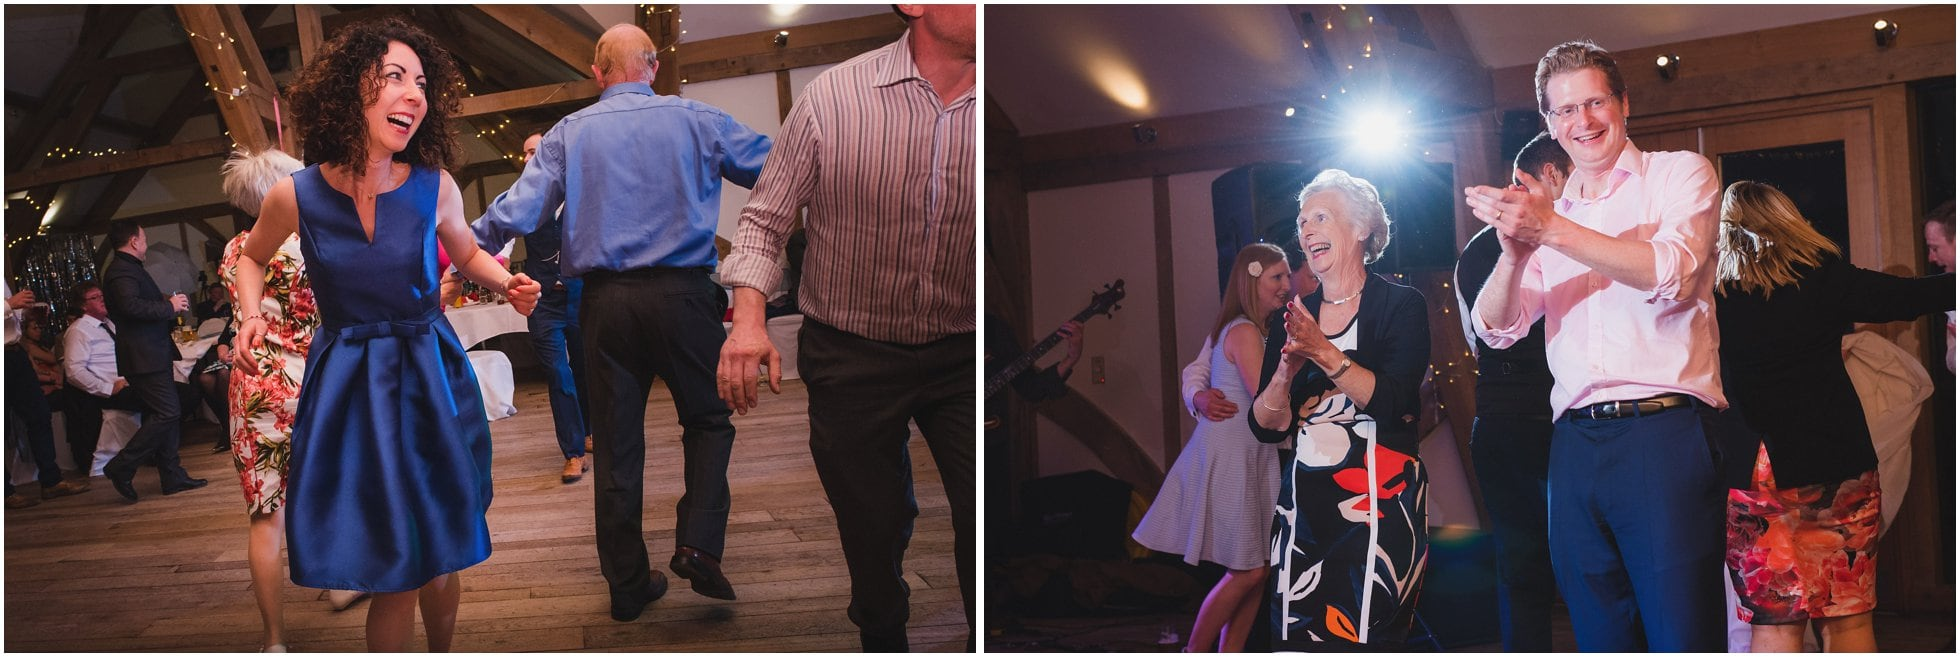 Ceilidh dancefloor wedding fun